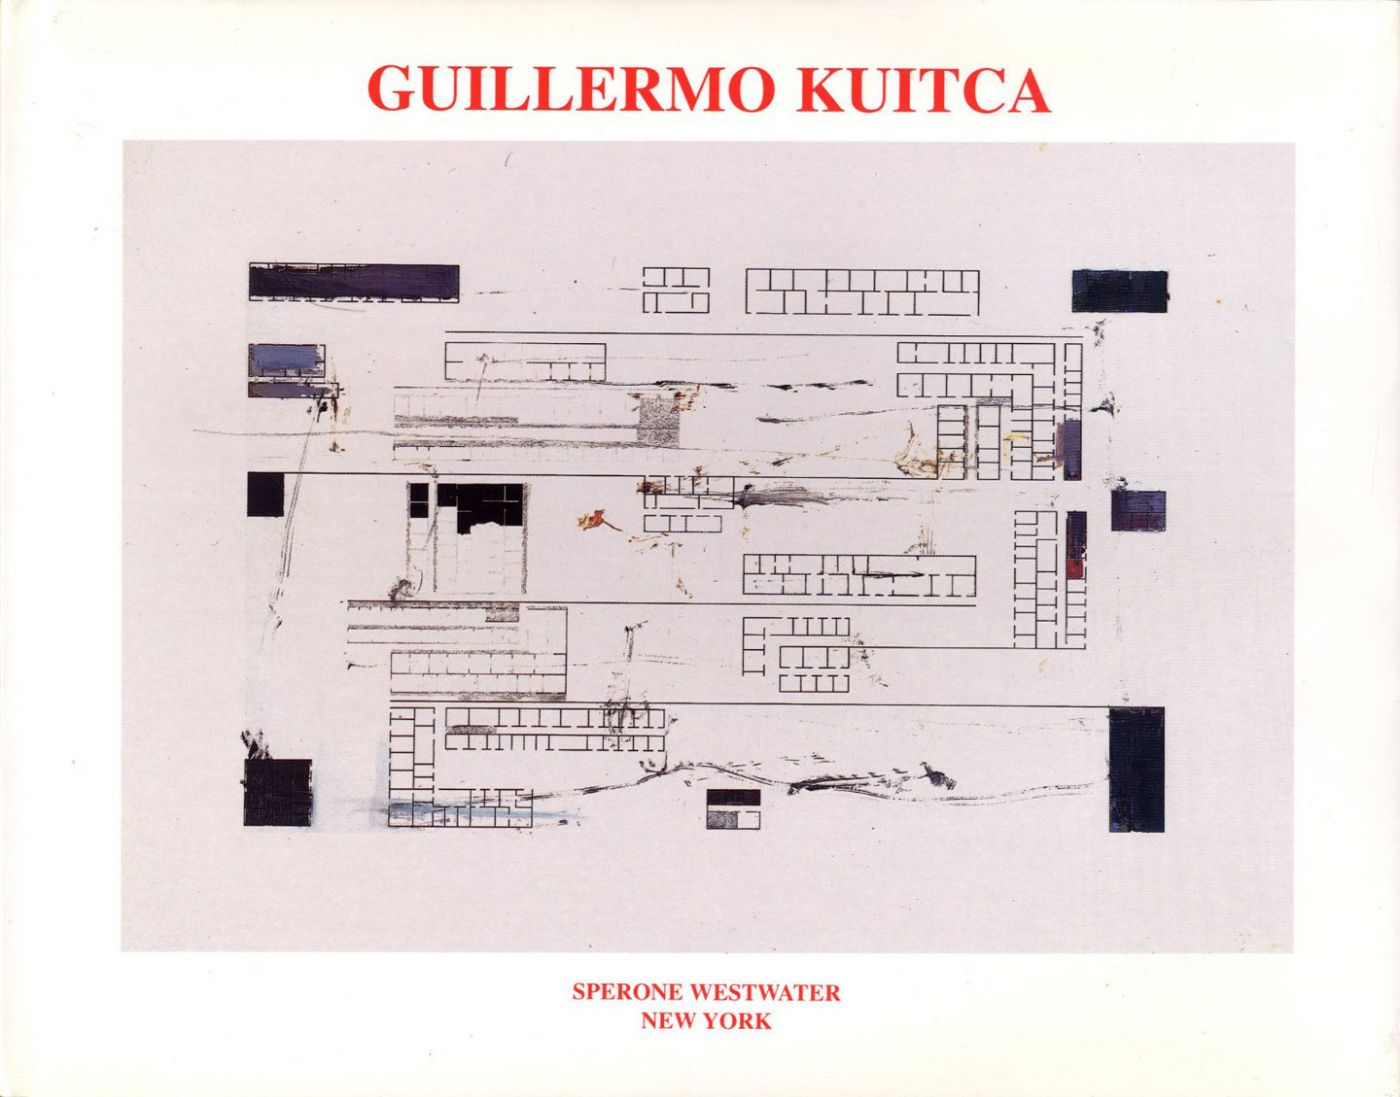 Guillermo Kuitca: Castle to Castle (from the Neufert Suite)